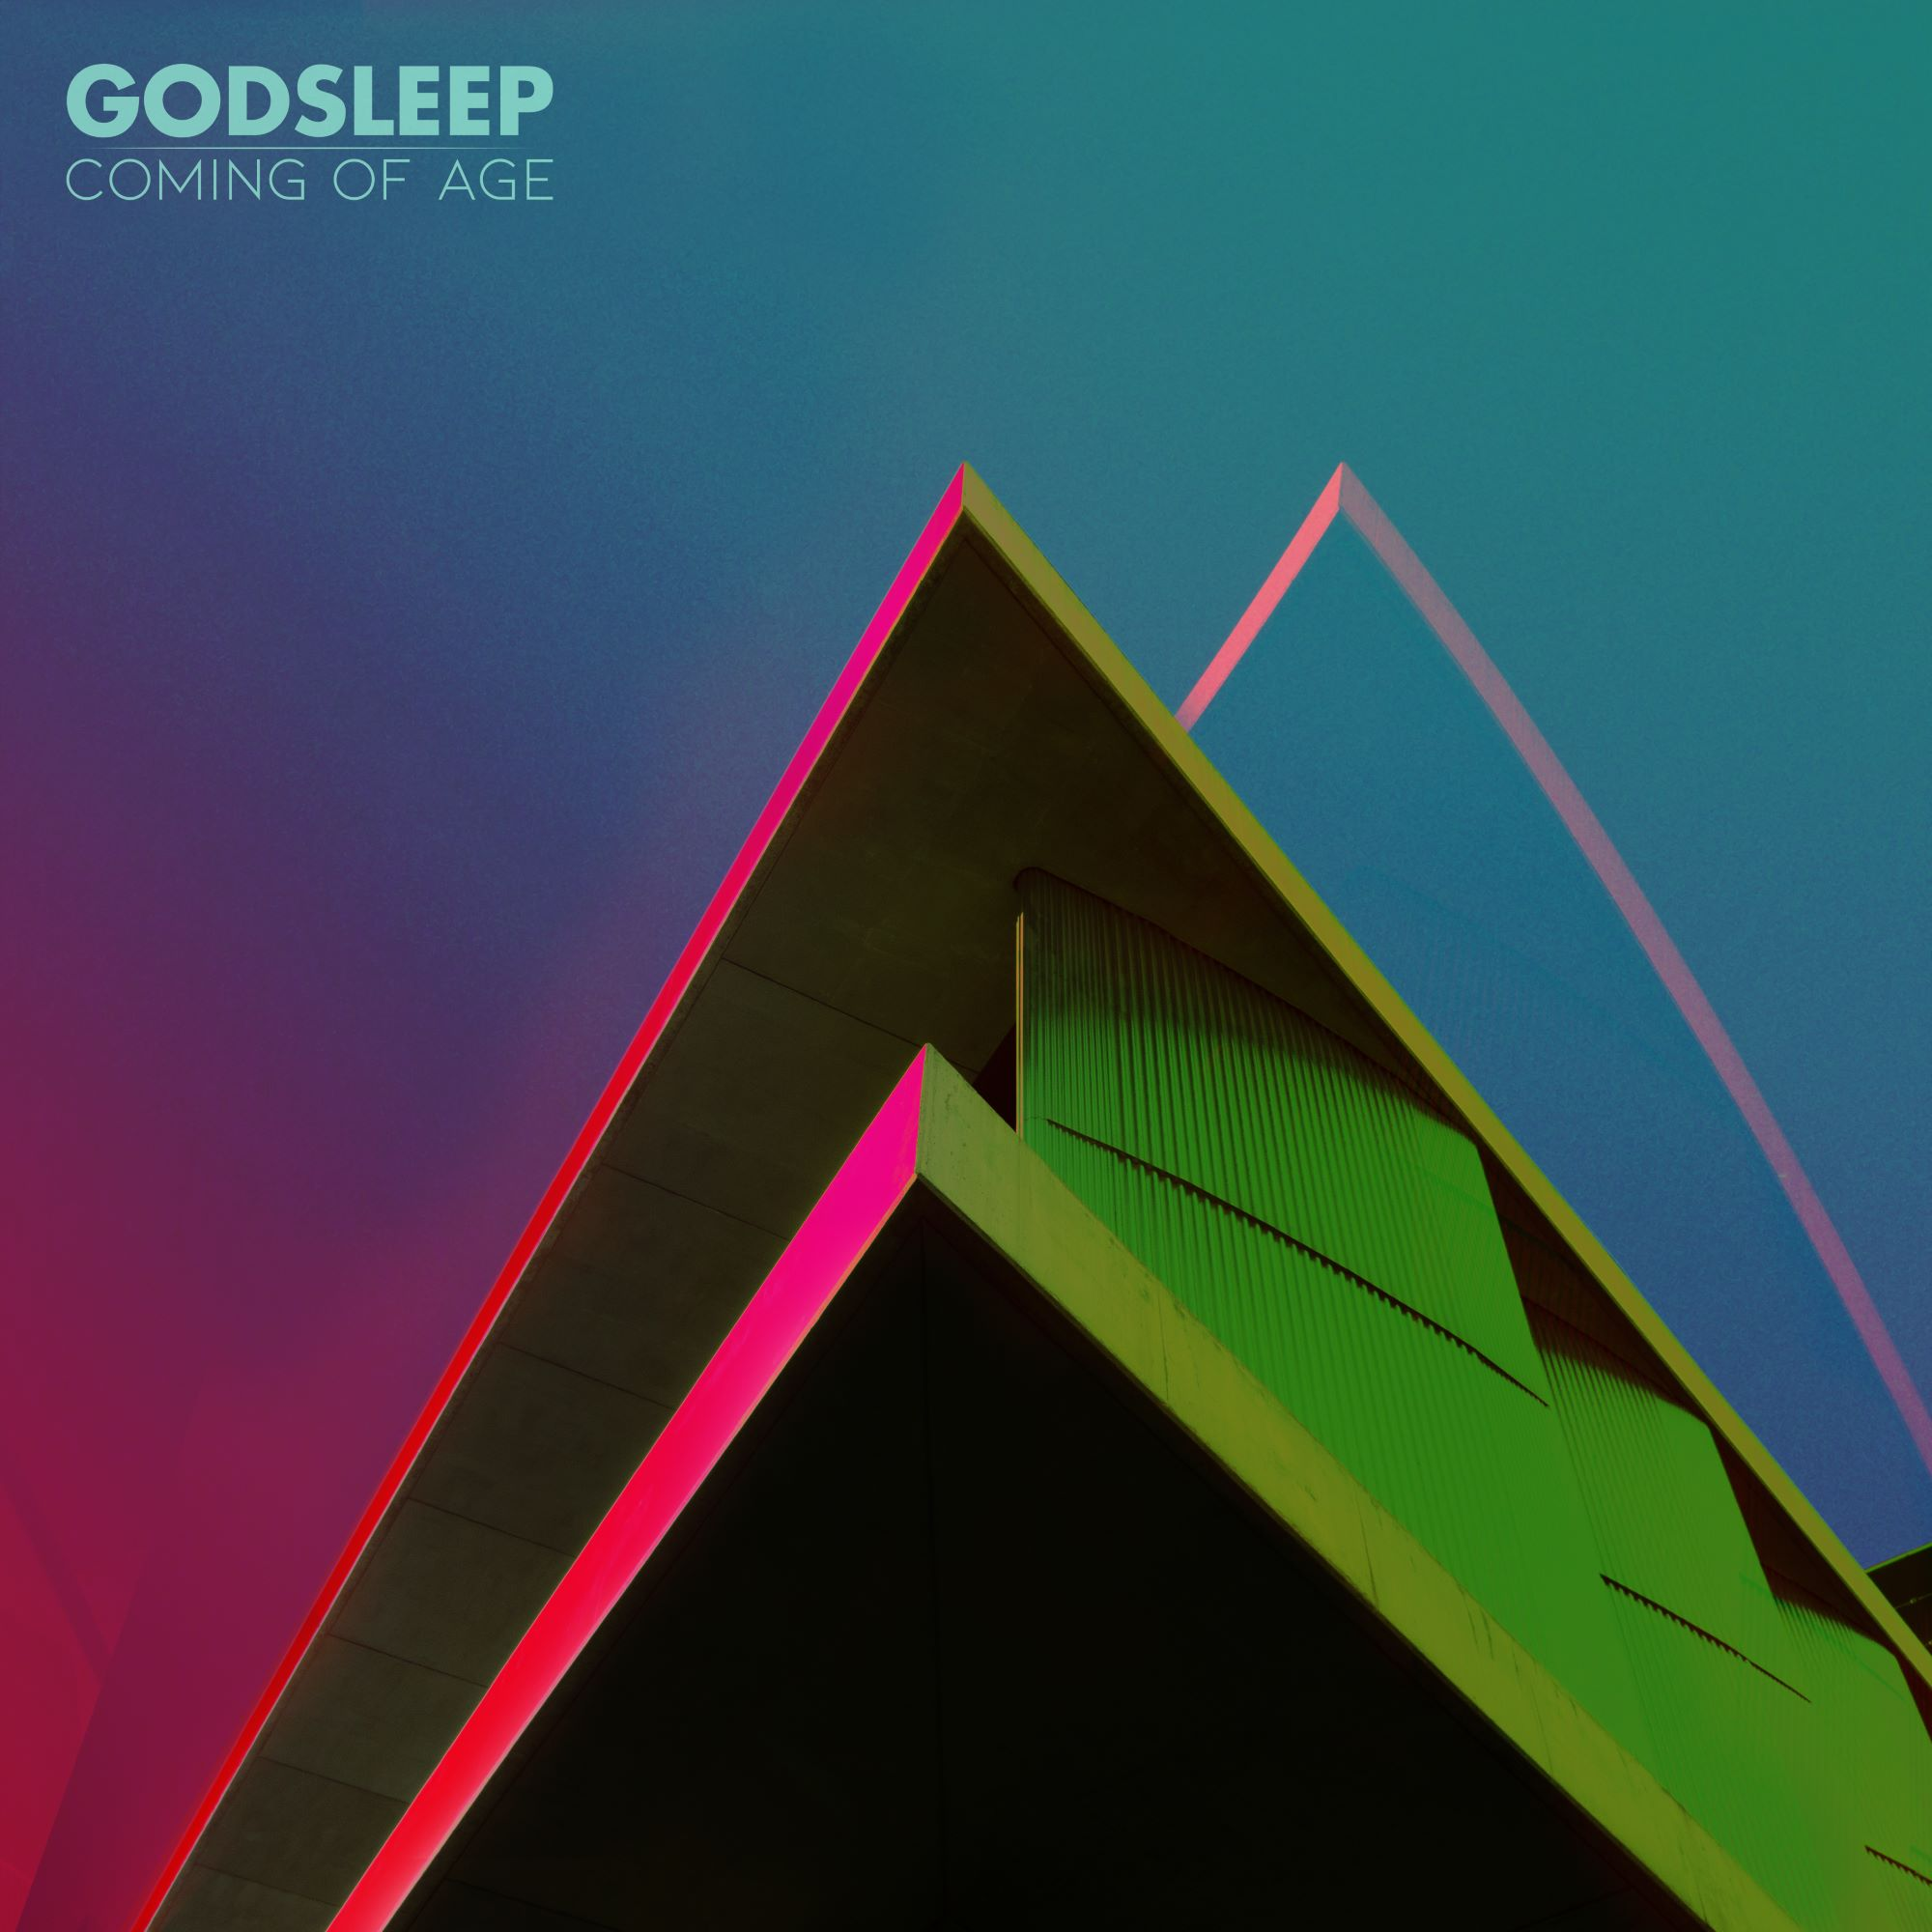 godsleep coming of age